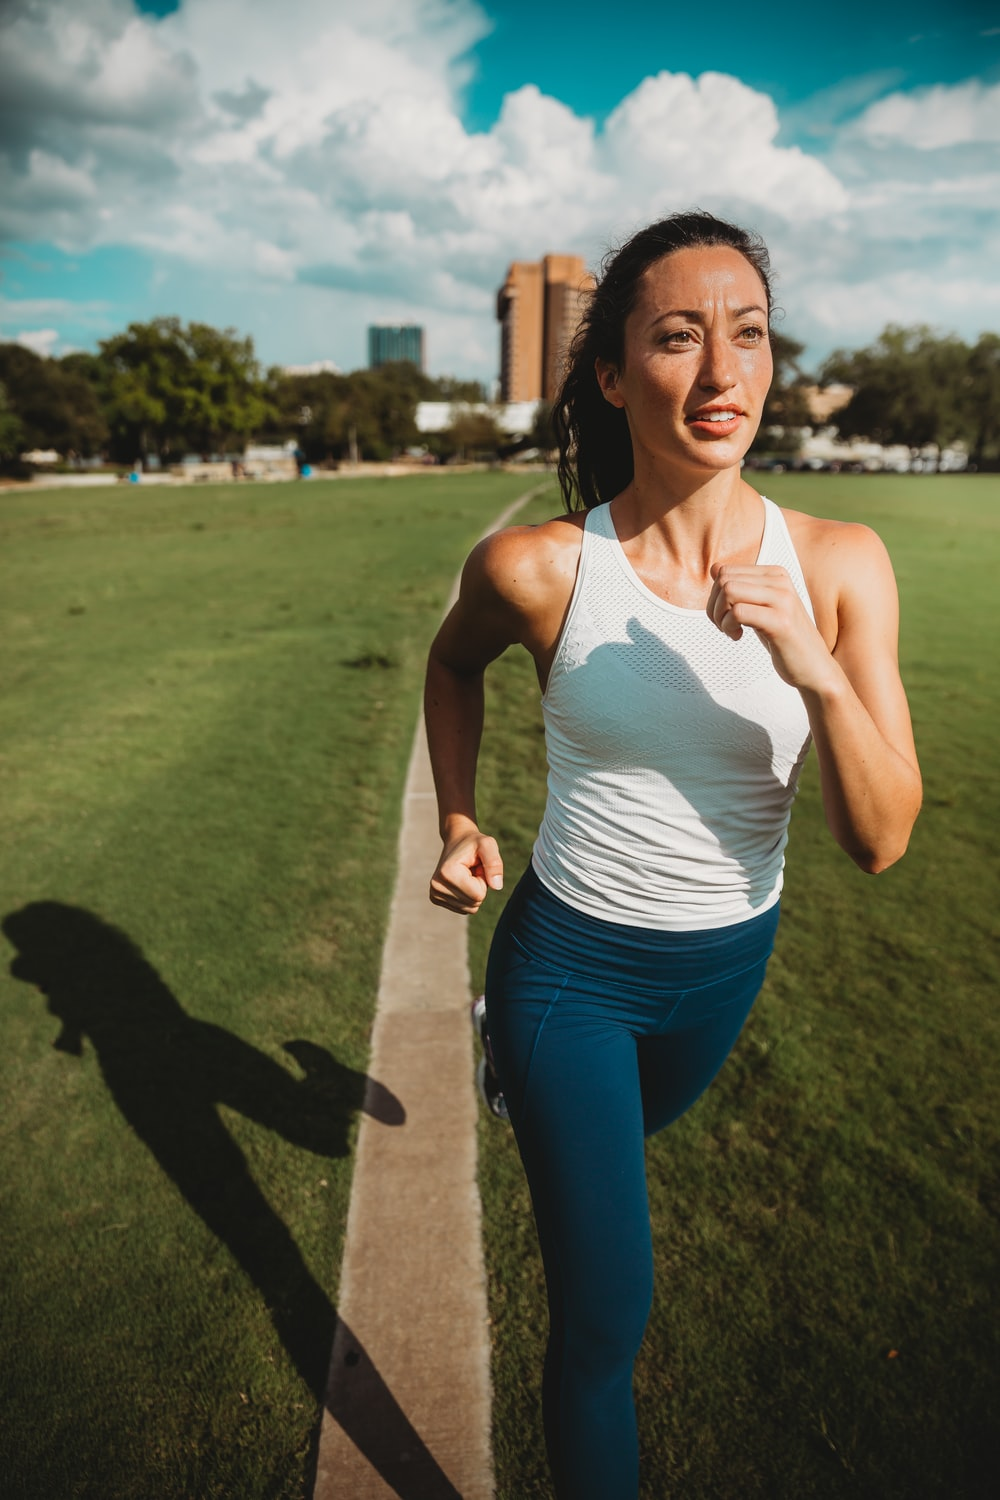 woman in white tank top and blue leggings jogging in grass field